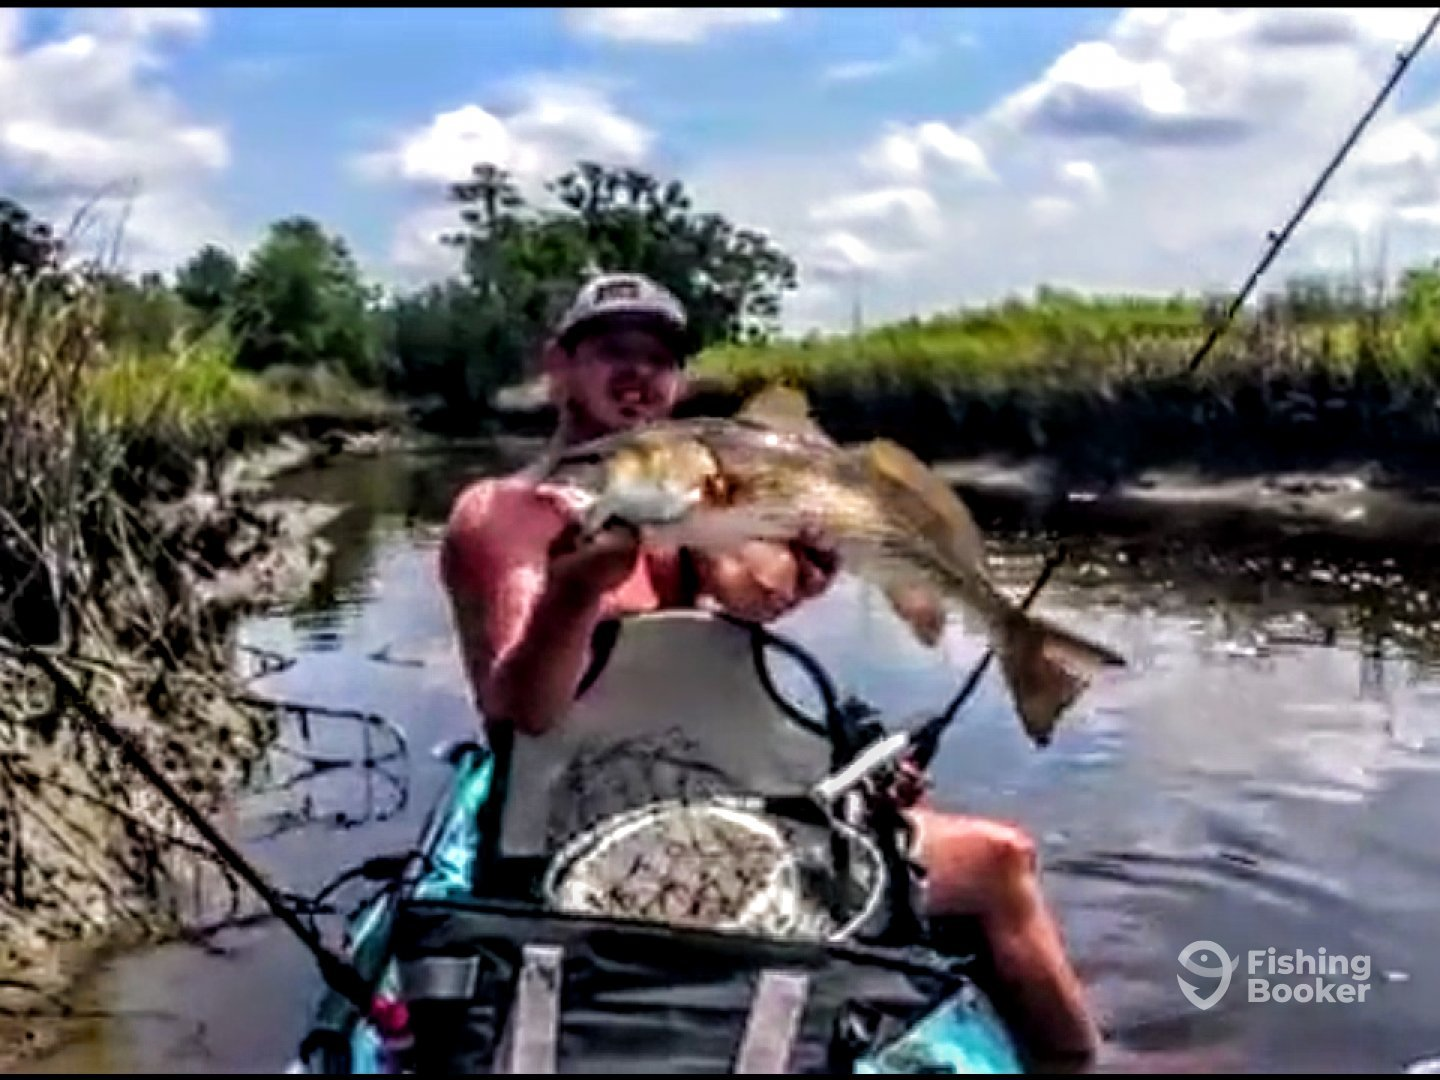 Tybee fishing company kayak charter savannah ga for Public fishing in georgia